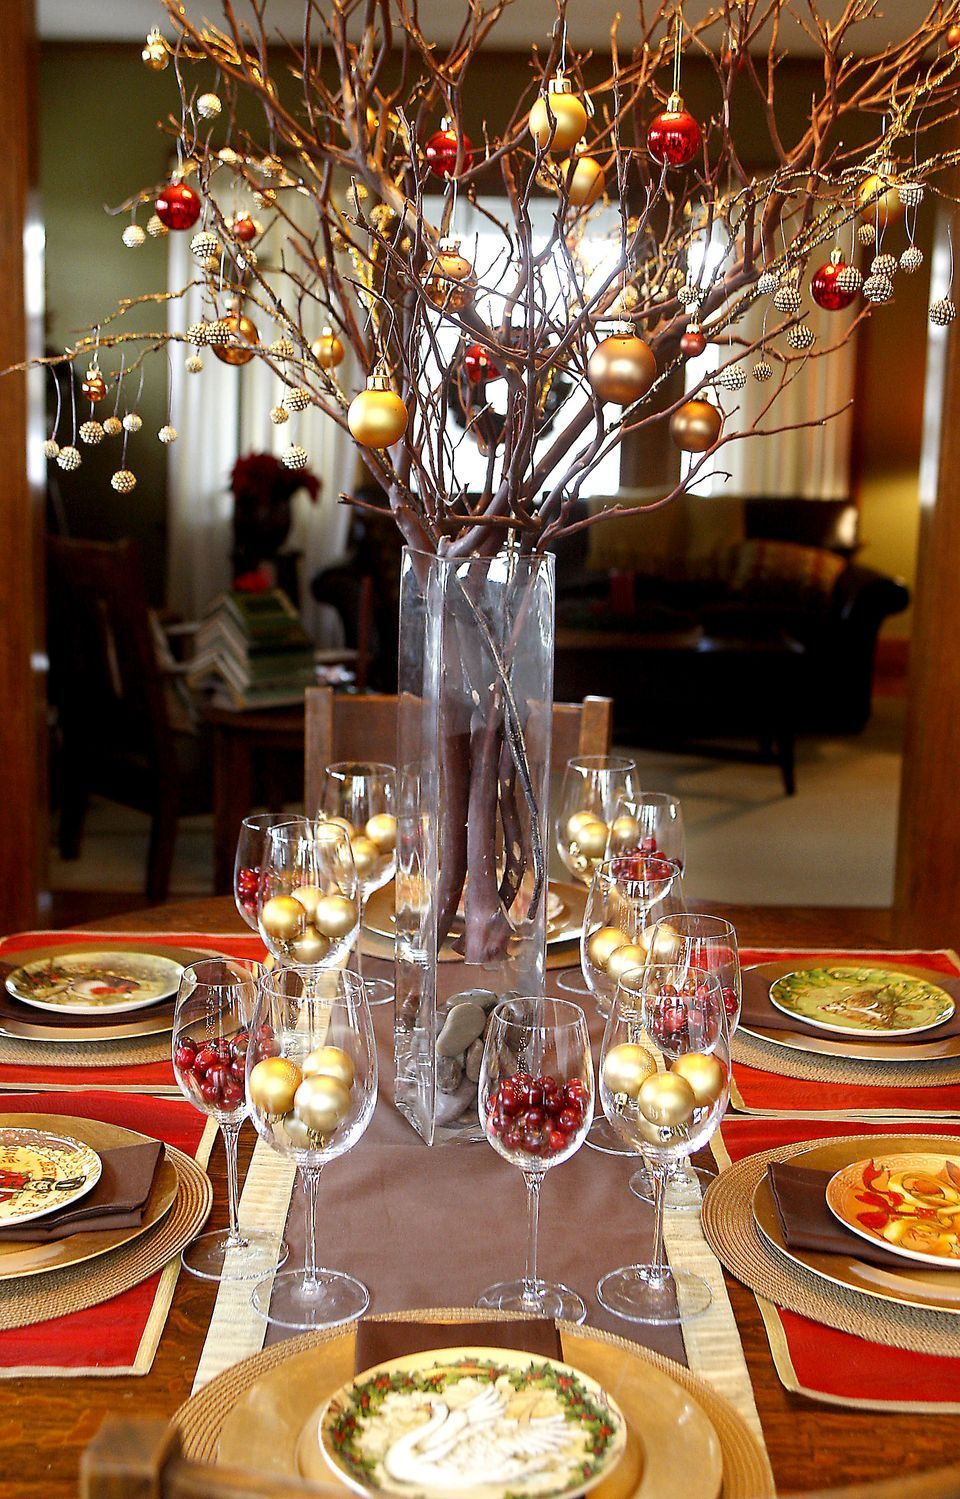 Furniture And Accessories Creative Modern Christmas Holiday Table Centerpiece Ideas Wit Holiday Centerpieces Holiday Table Centerpieces Christmas Centerpieces